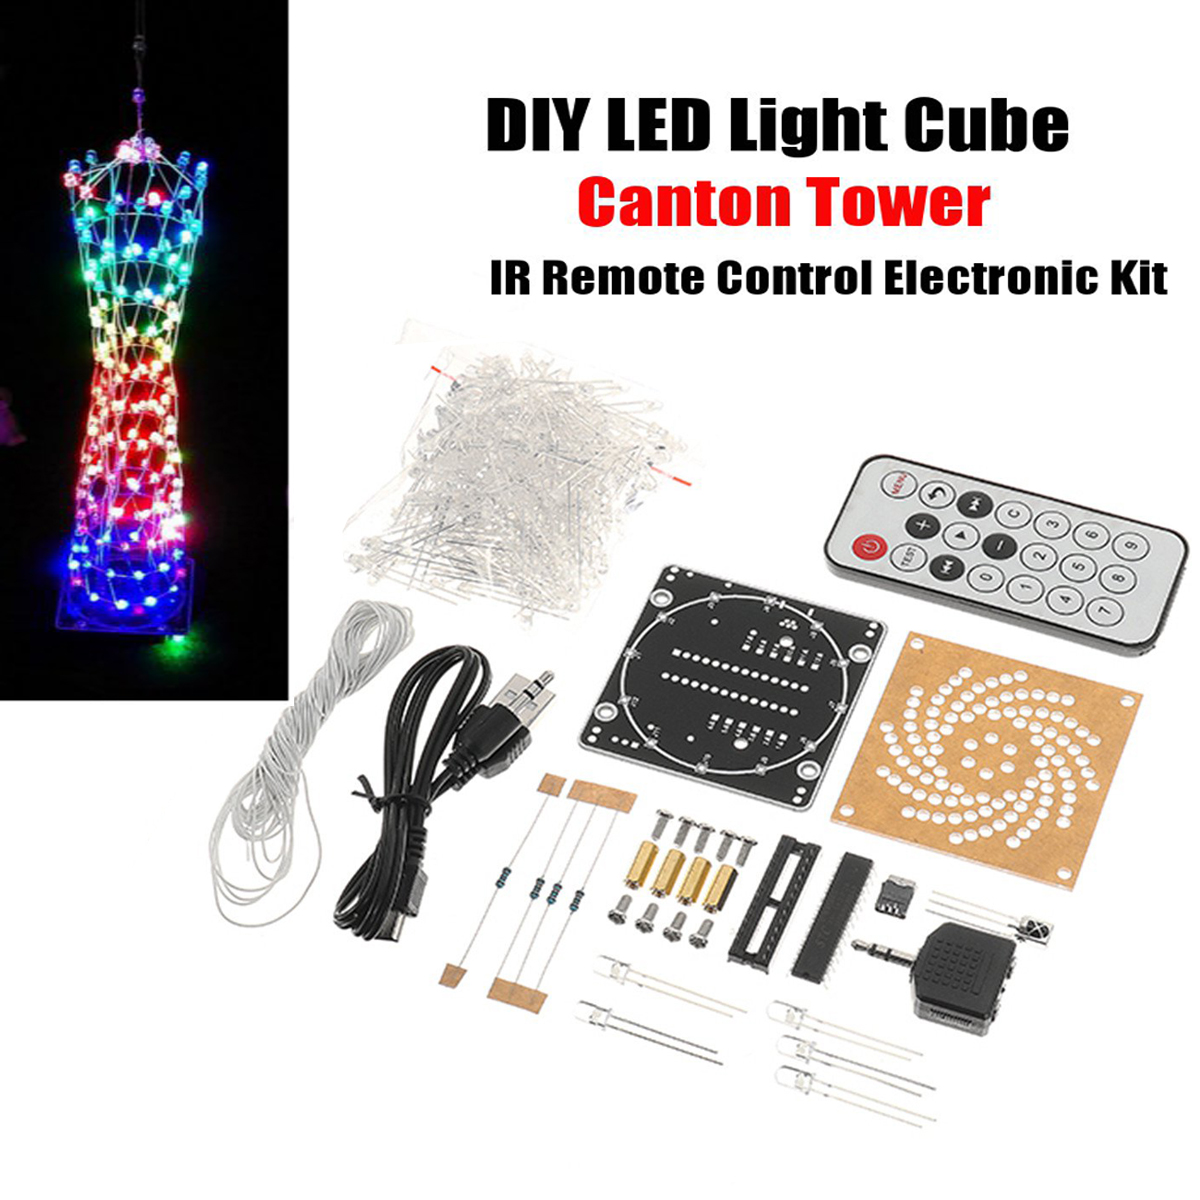 DIY Little Colorful LED Light Cube Canton Tower Suite IR Remote Control Electronic Kit Module